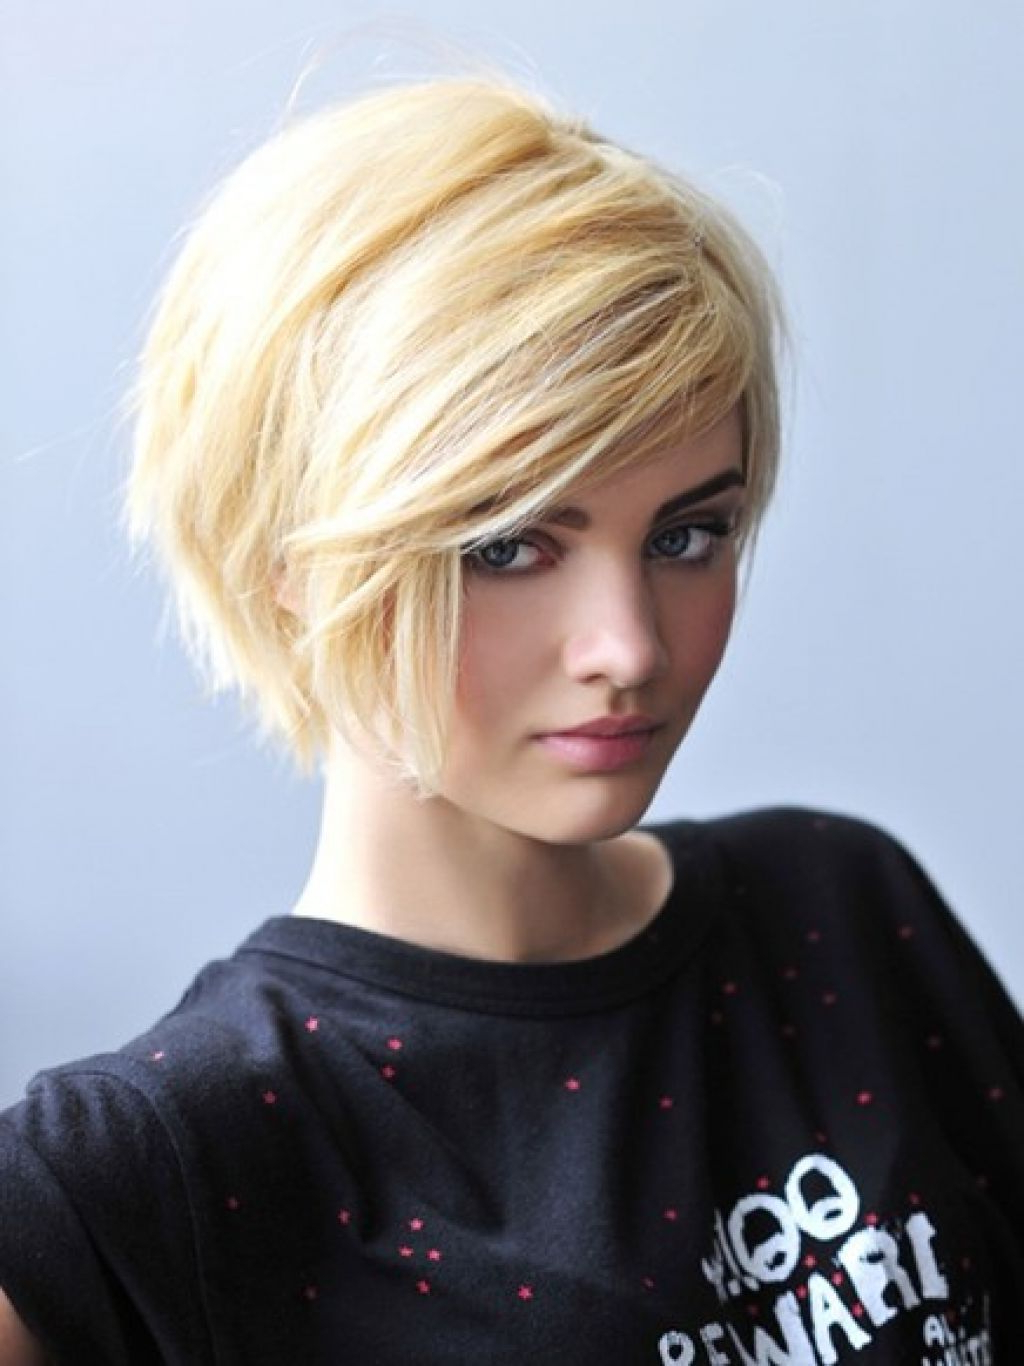 Womens Short Hairstyles For Thick Hair – Women Hairstyle Trendy In Ladies Short Hairstyles For Thick Hair (View 7 of 25)